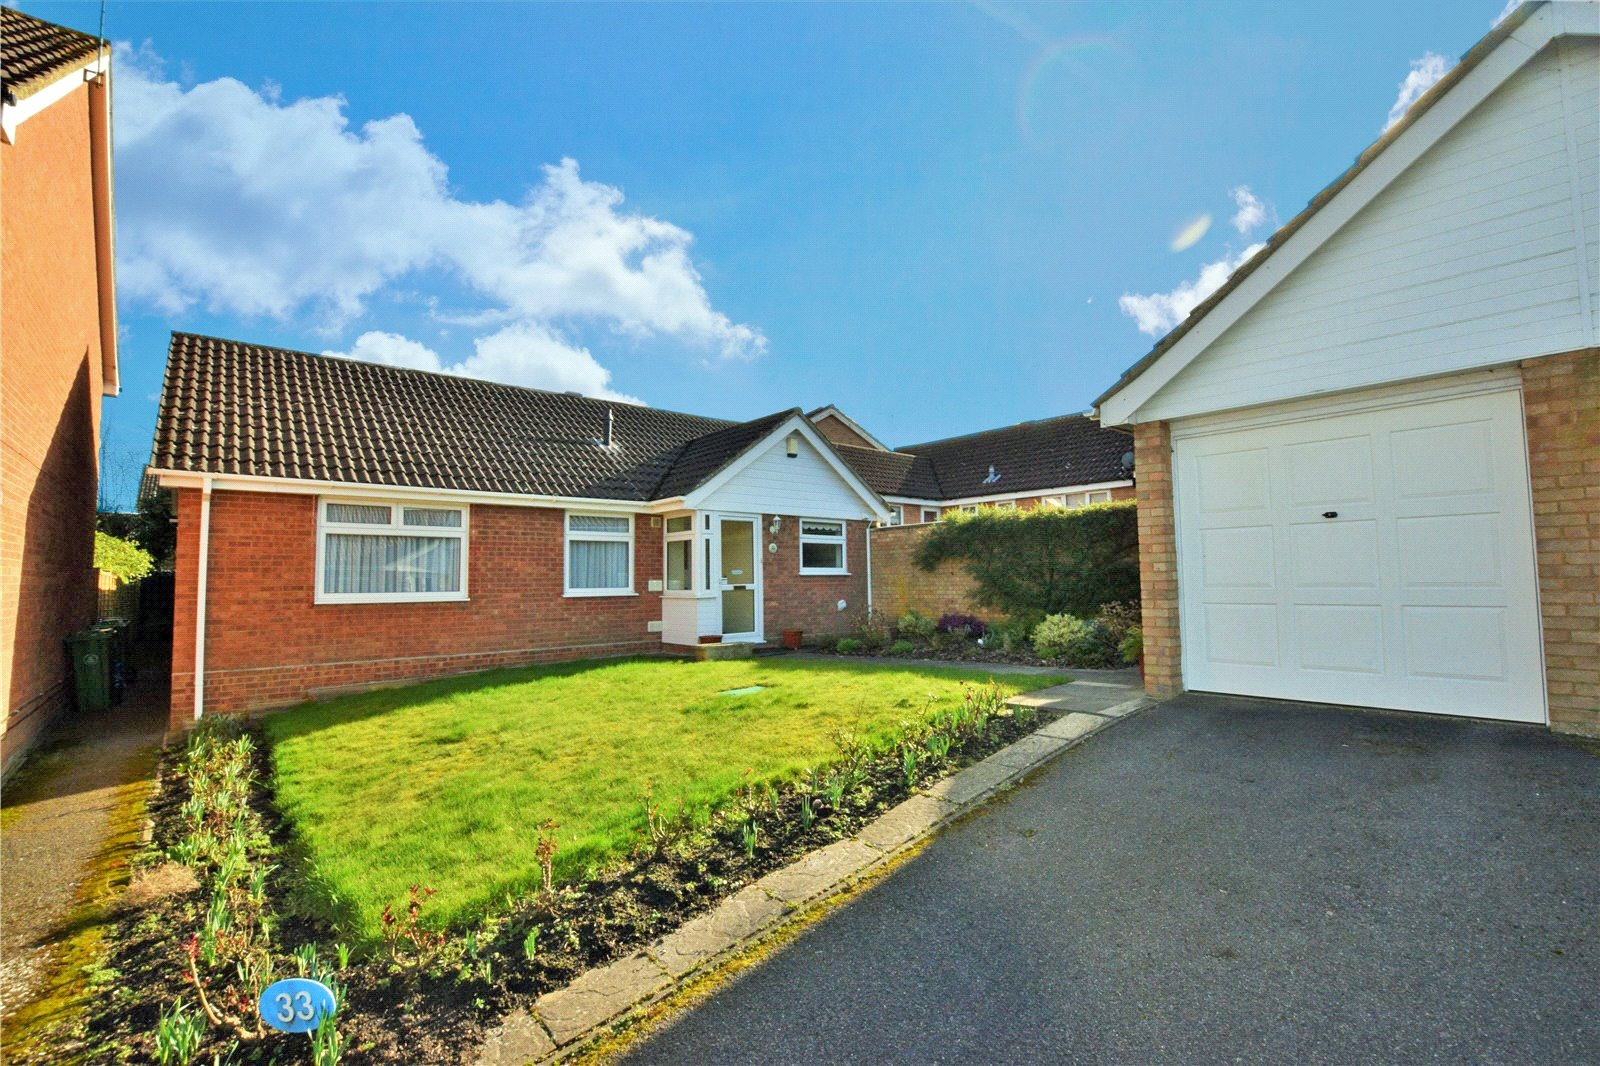 3 Bedrooms Detached Bungalow for sale in Windsor Way, Frimley, Camberley, Surrey, GU16